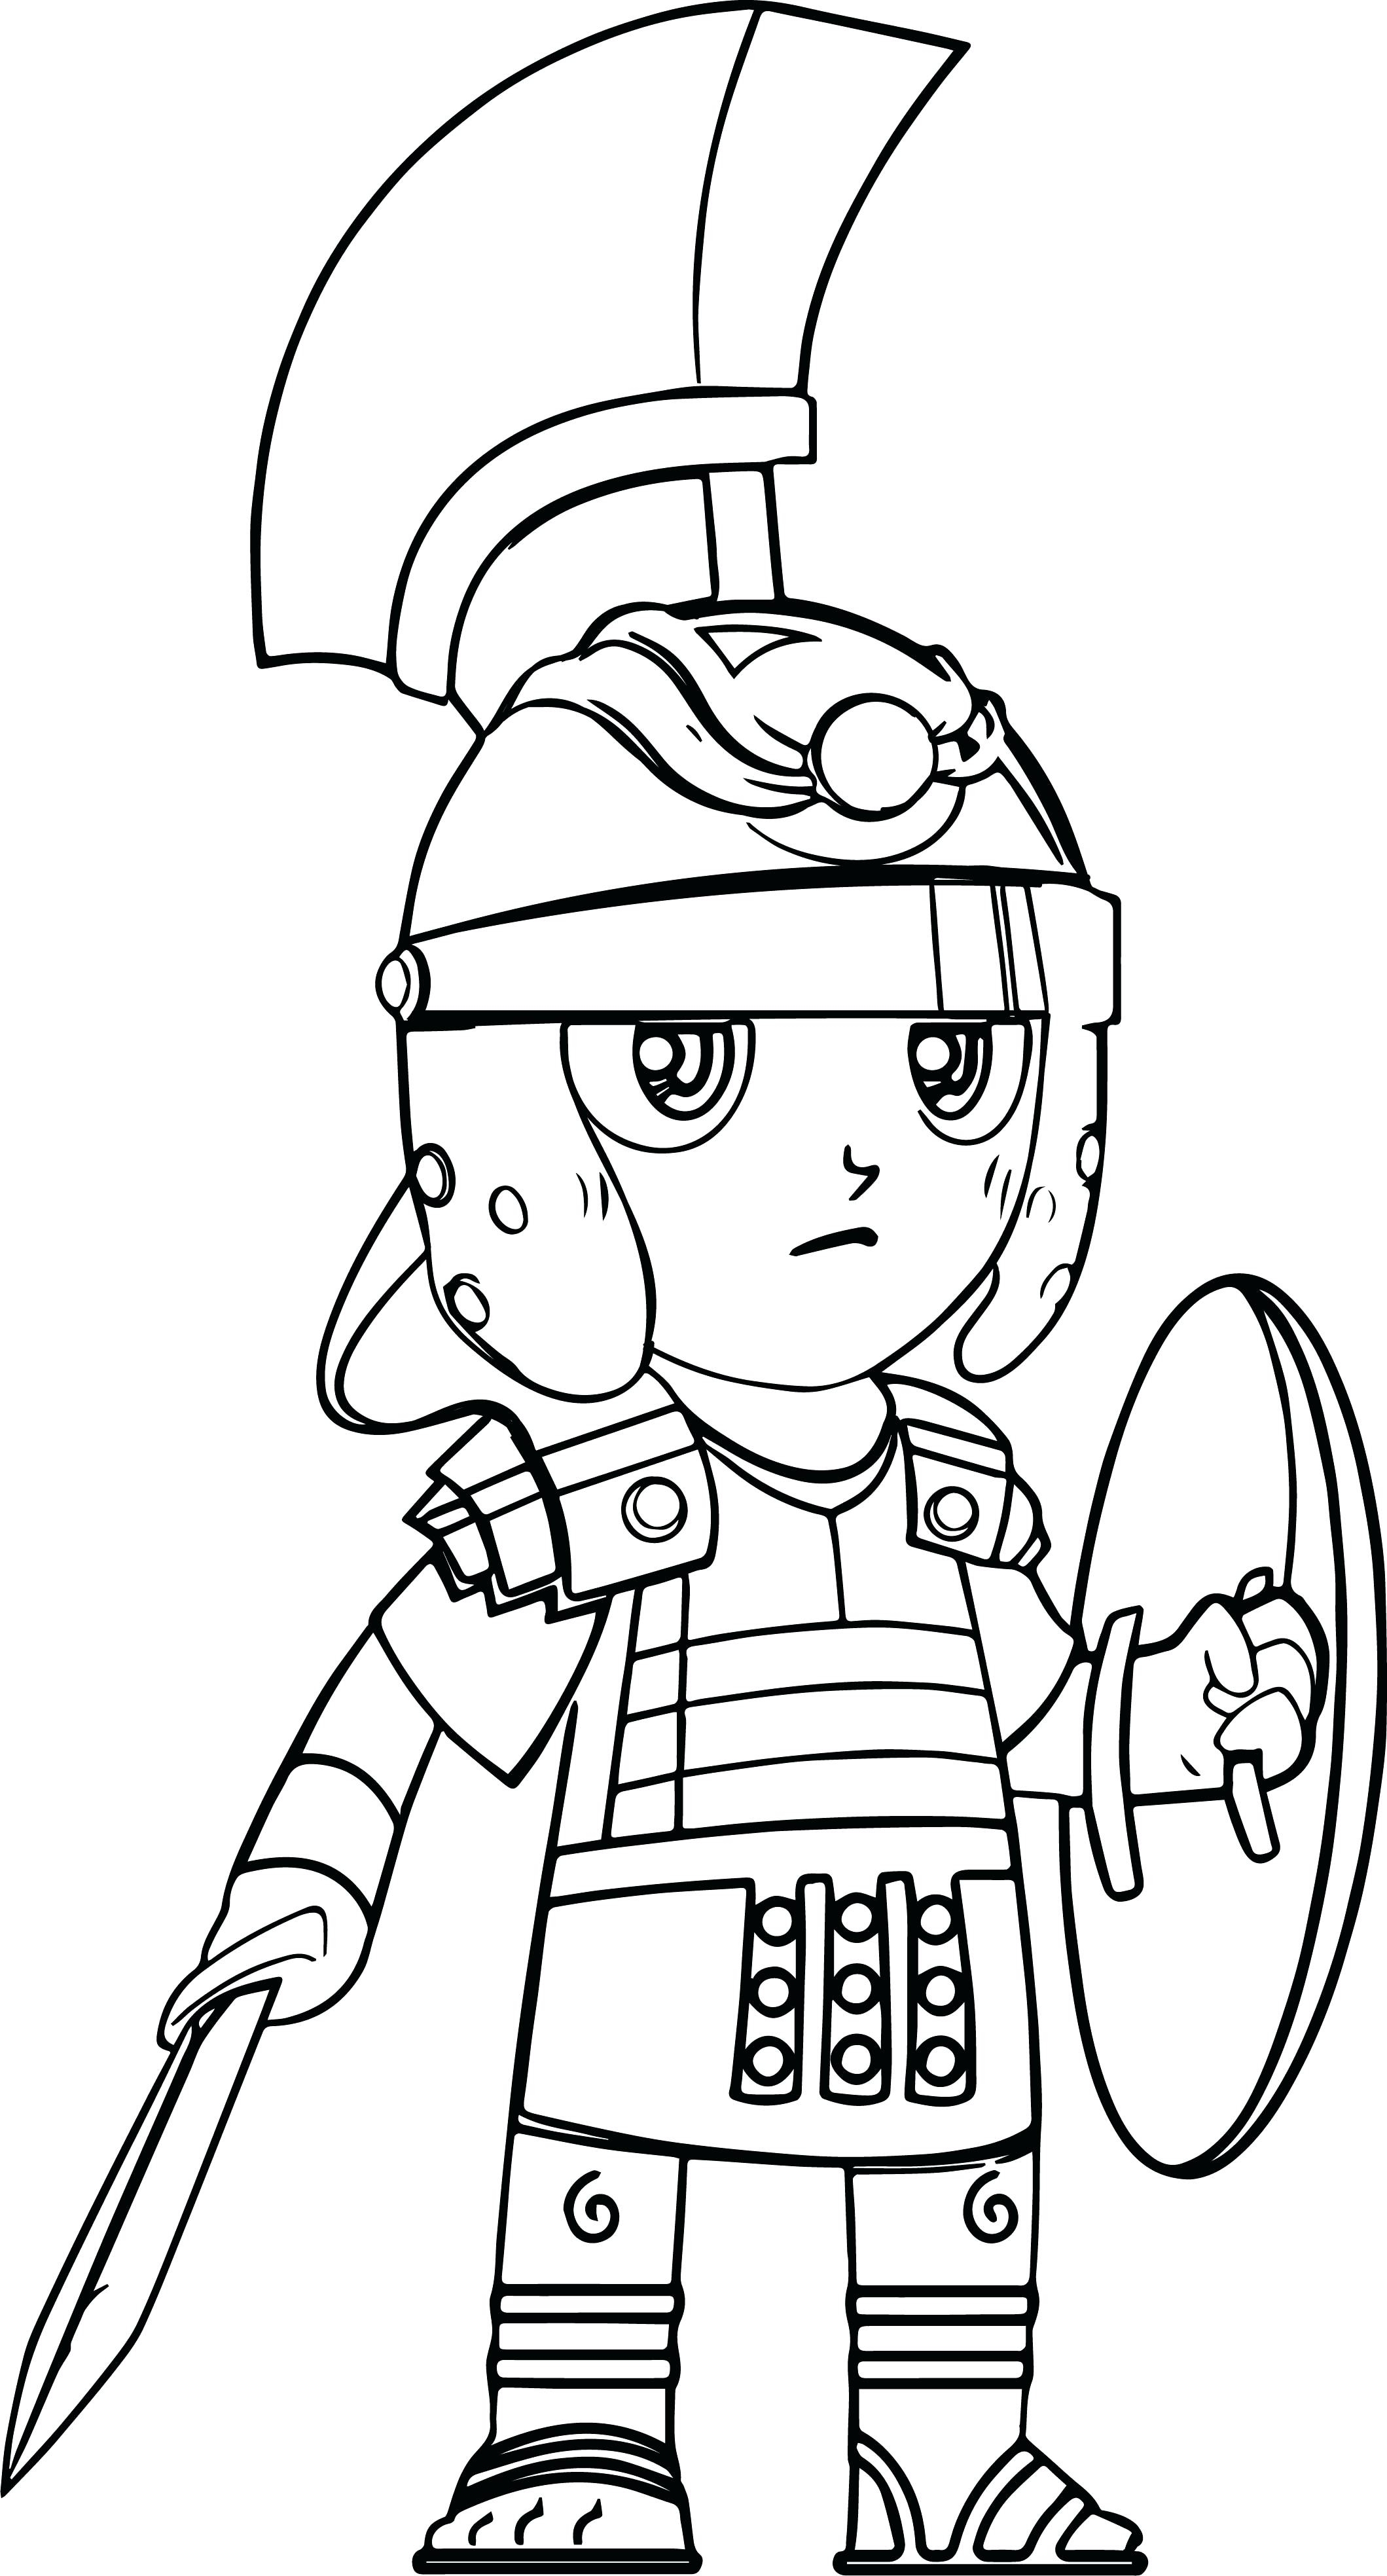 2119x3935 Photos Roman Soldier Coloring Pages,